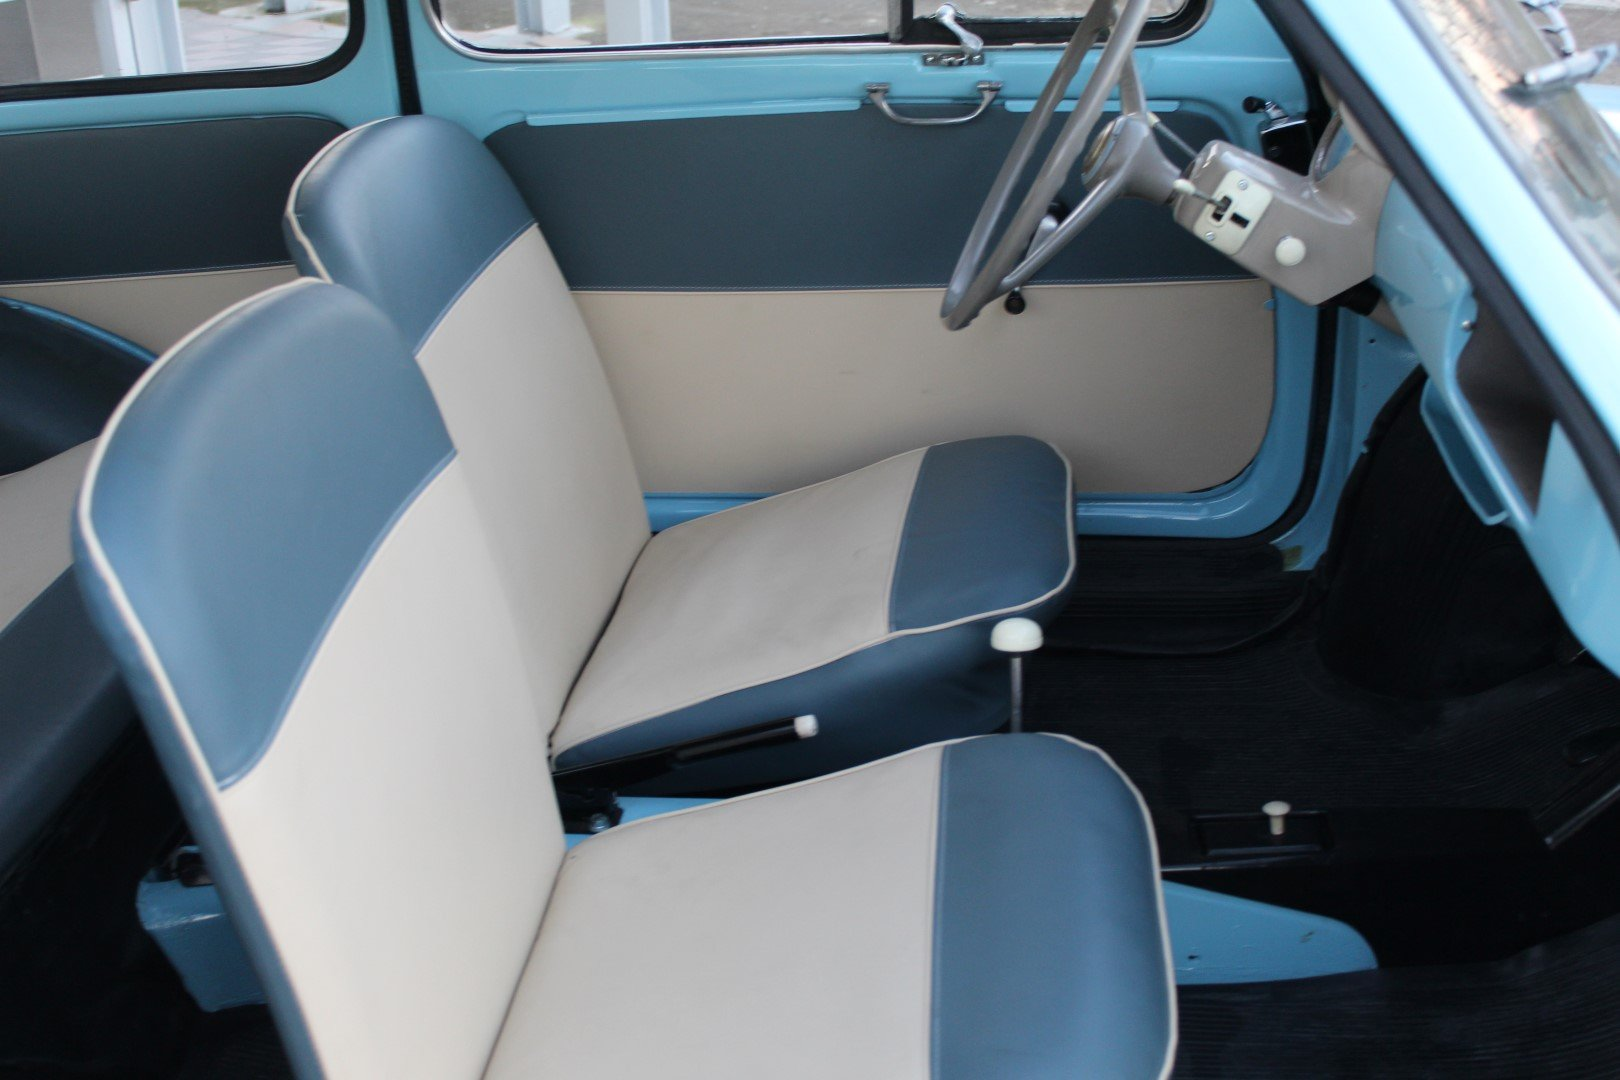 1967 Fiat 500 N Syer Puch 500 D For Sale (picture 3 of 6)